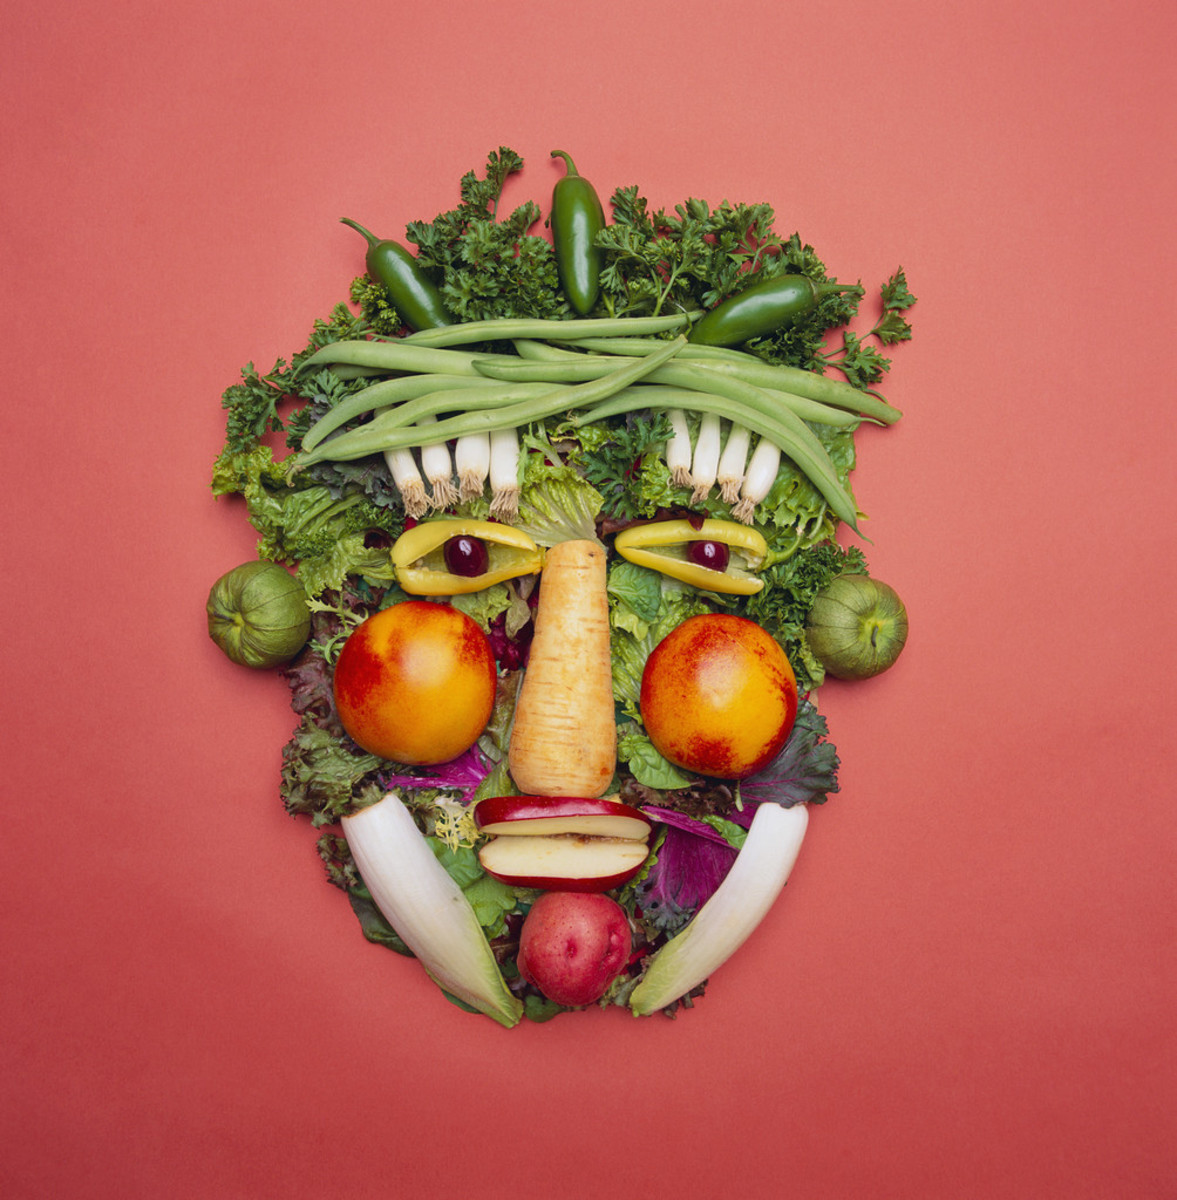 10-fruits-and-vegetables-you-dont-have-to-buy-organic